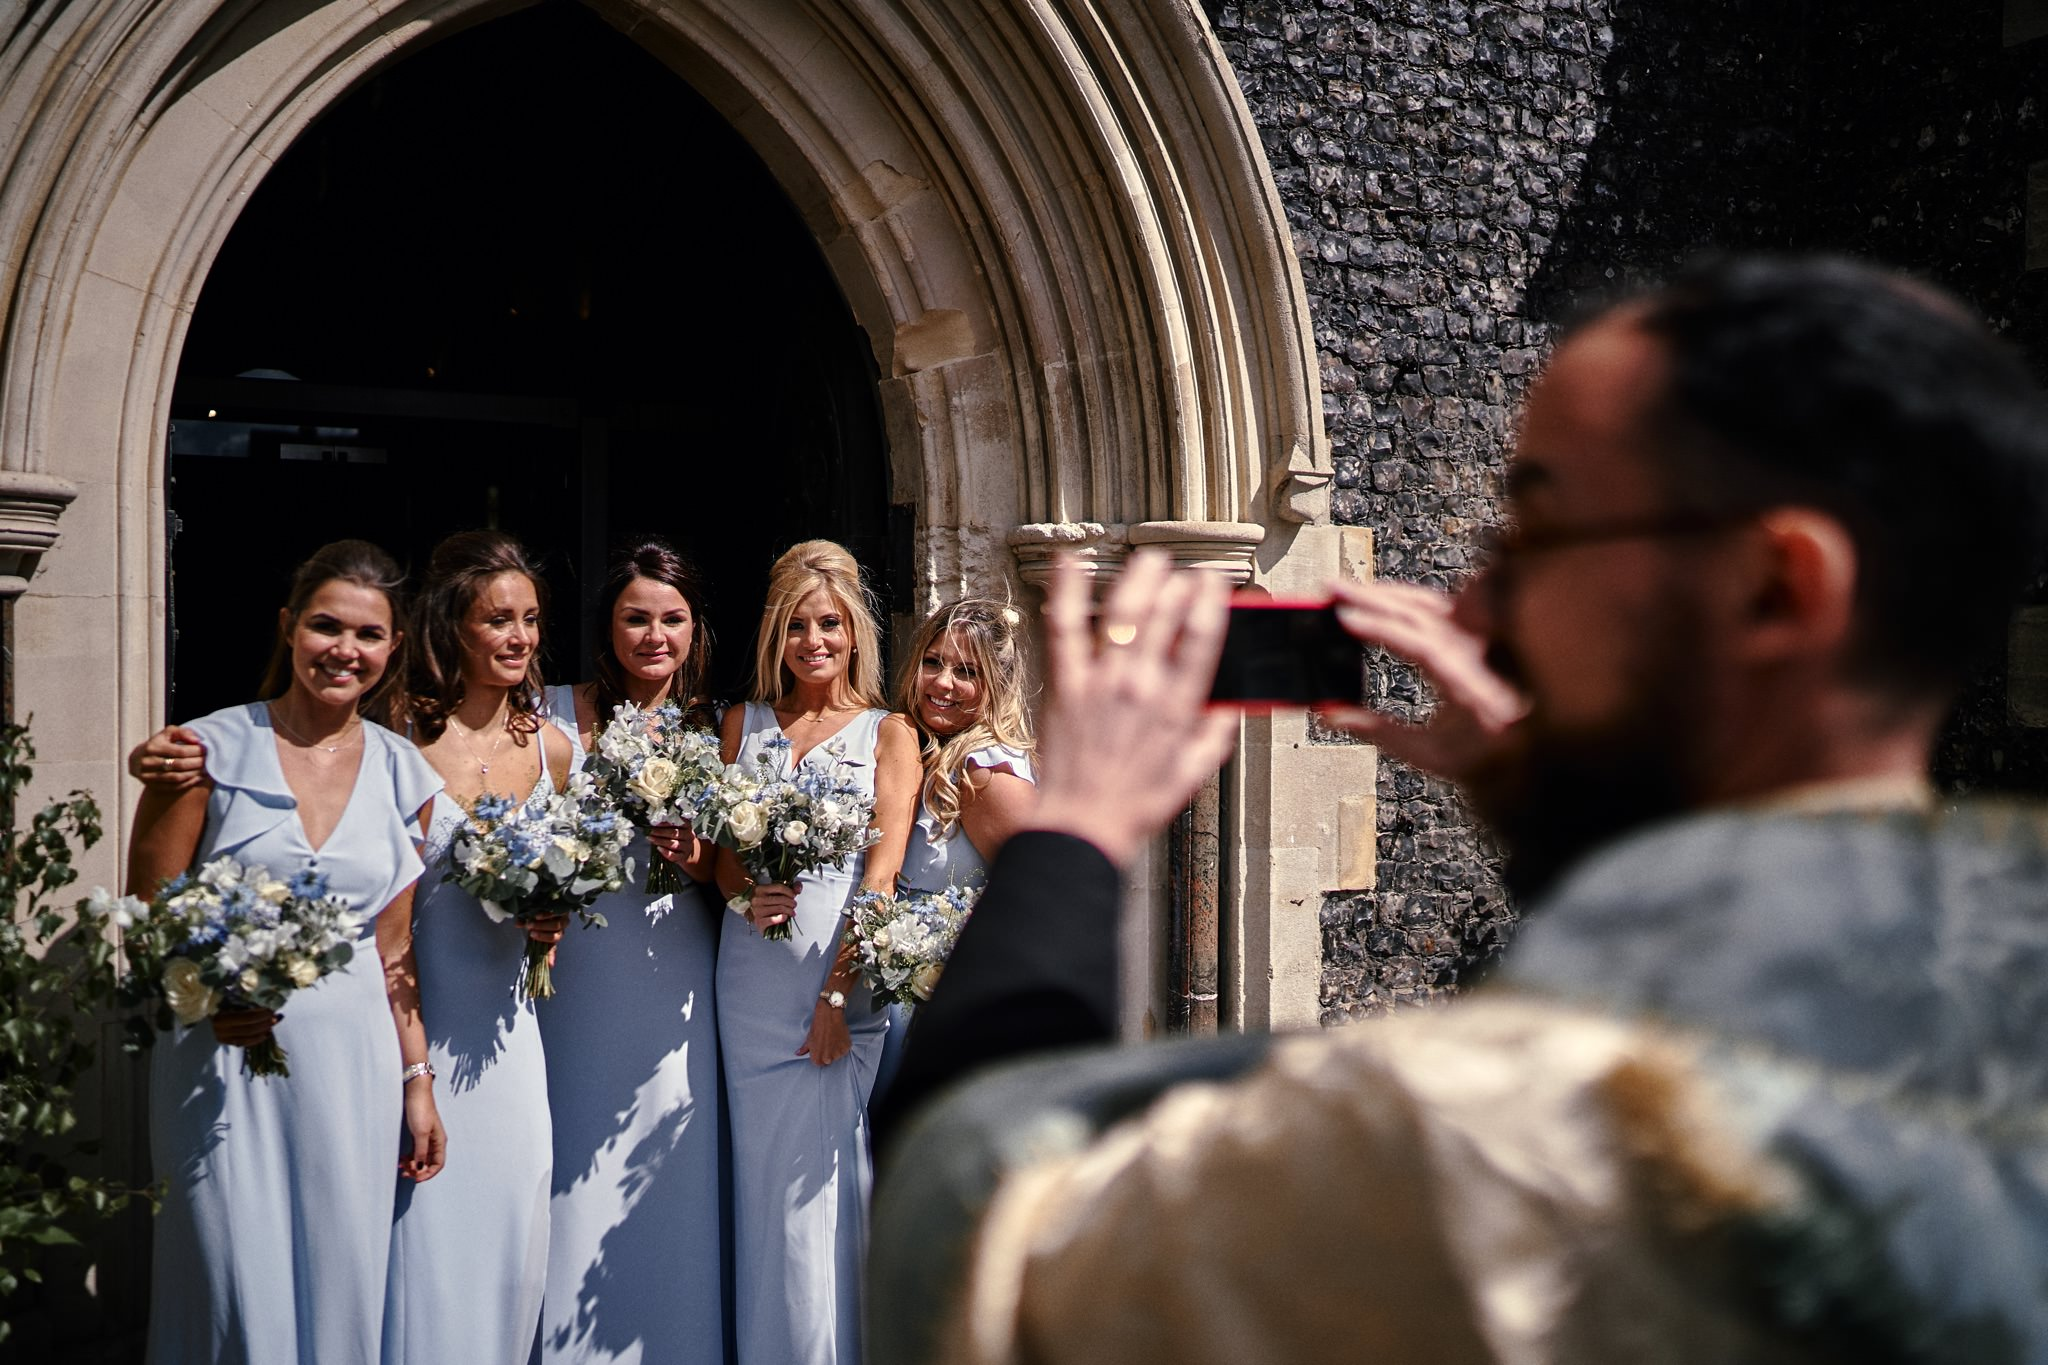 Bridesmaids pose for a selfie with the Vicar at St Mary's church, Henley-on-Thames